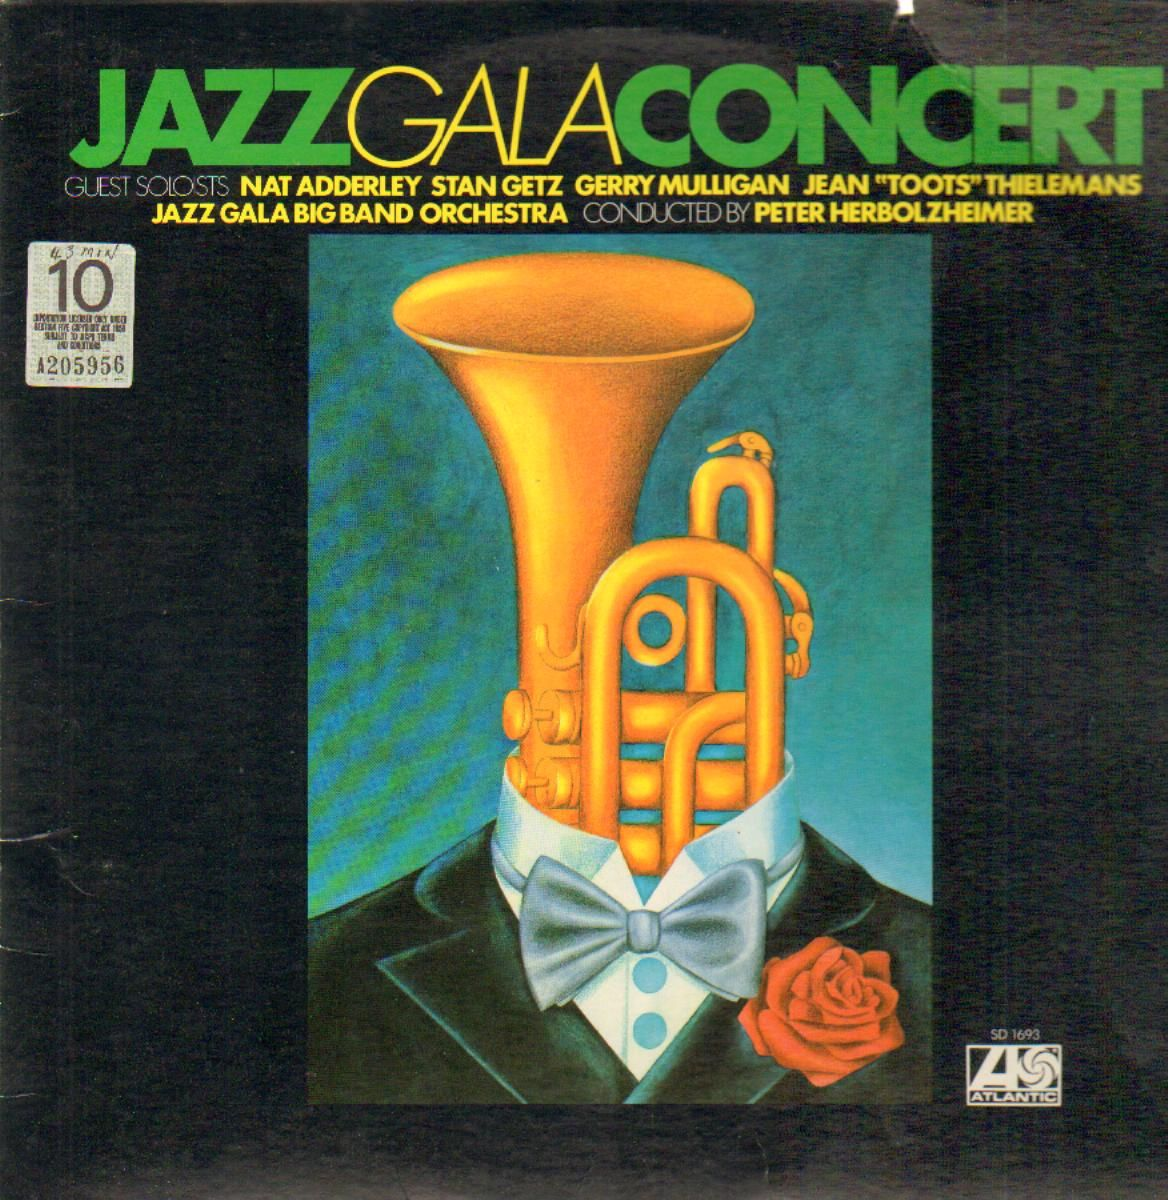 2011 Dates The Blues And Jazz Gala